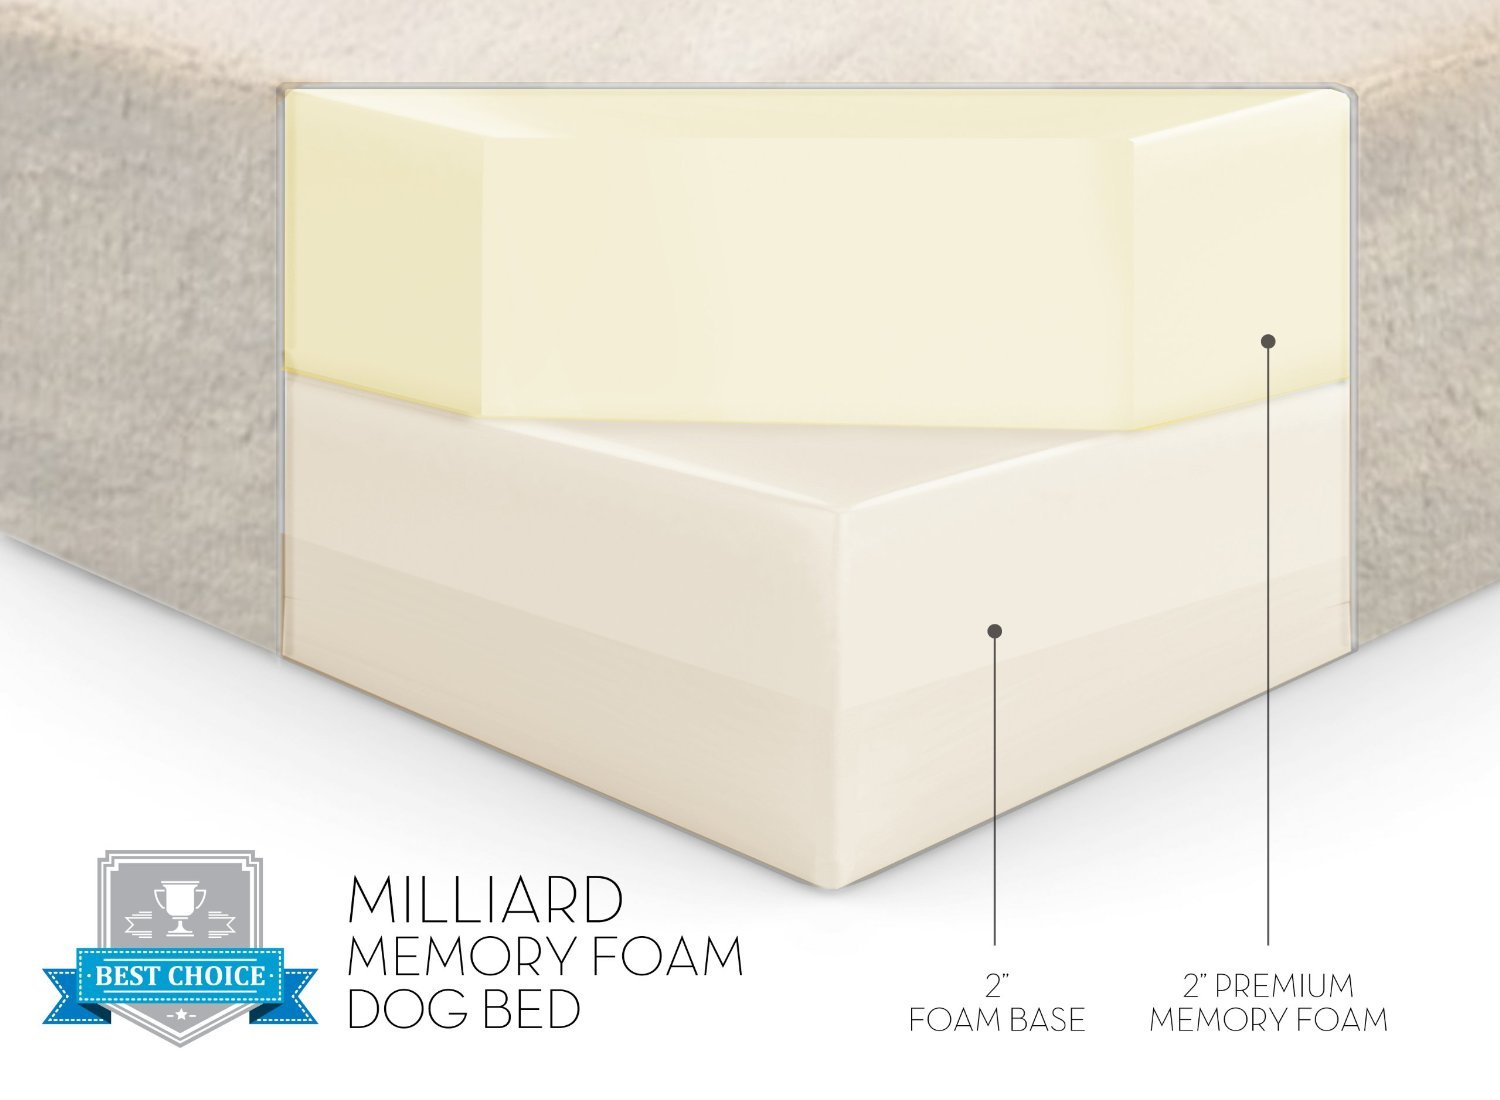 Amazon.com : Milliard Premium Orthopedic Memory Foam Dog Bed with  Anti-Microbial Waterproof Non-slip Cover, Small 24x18x4 in : Pet Bed Covers  : Pet Supplies